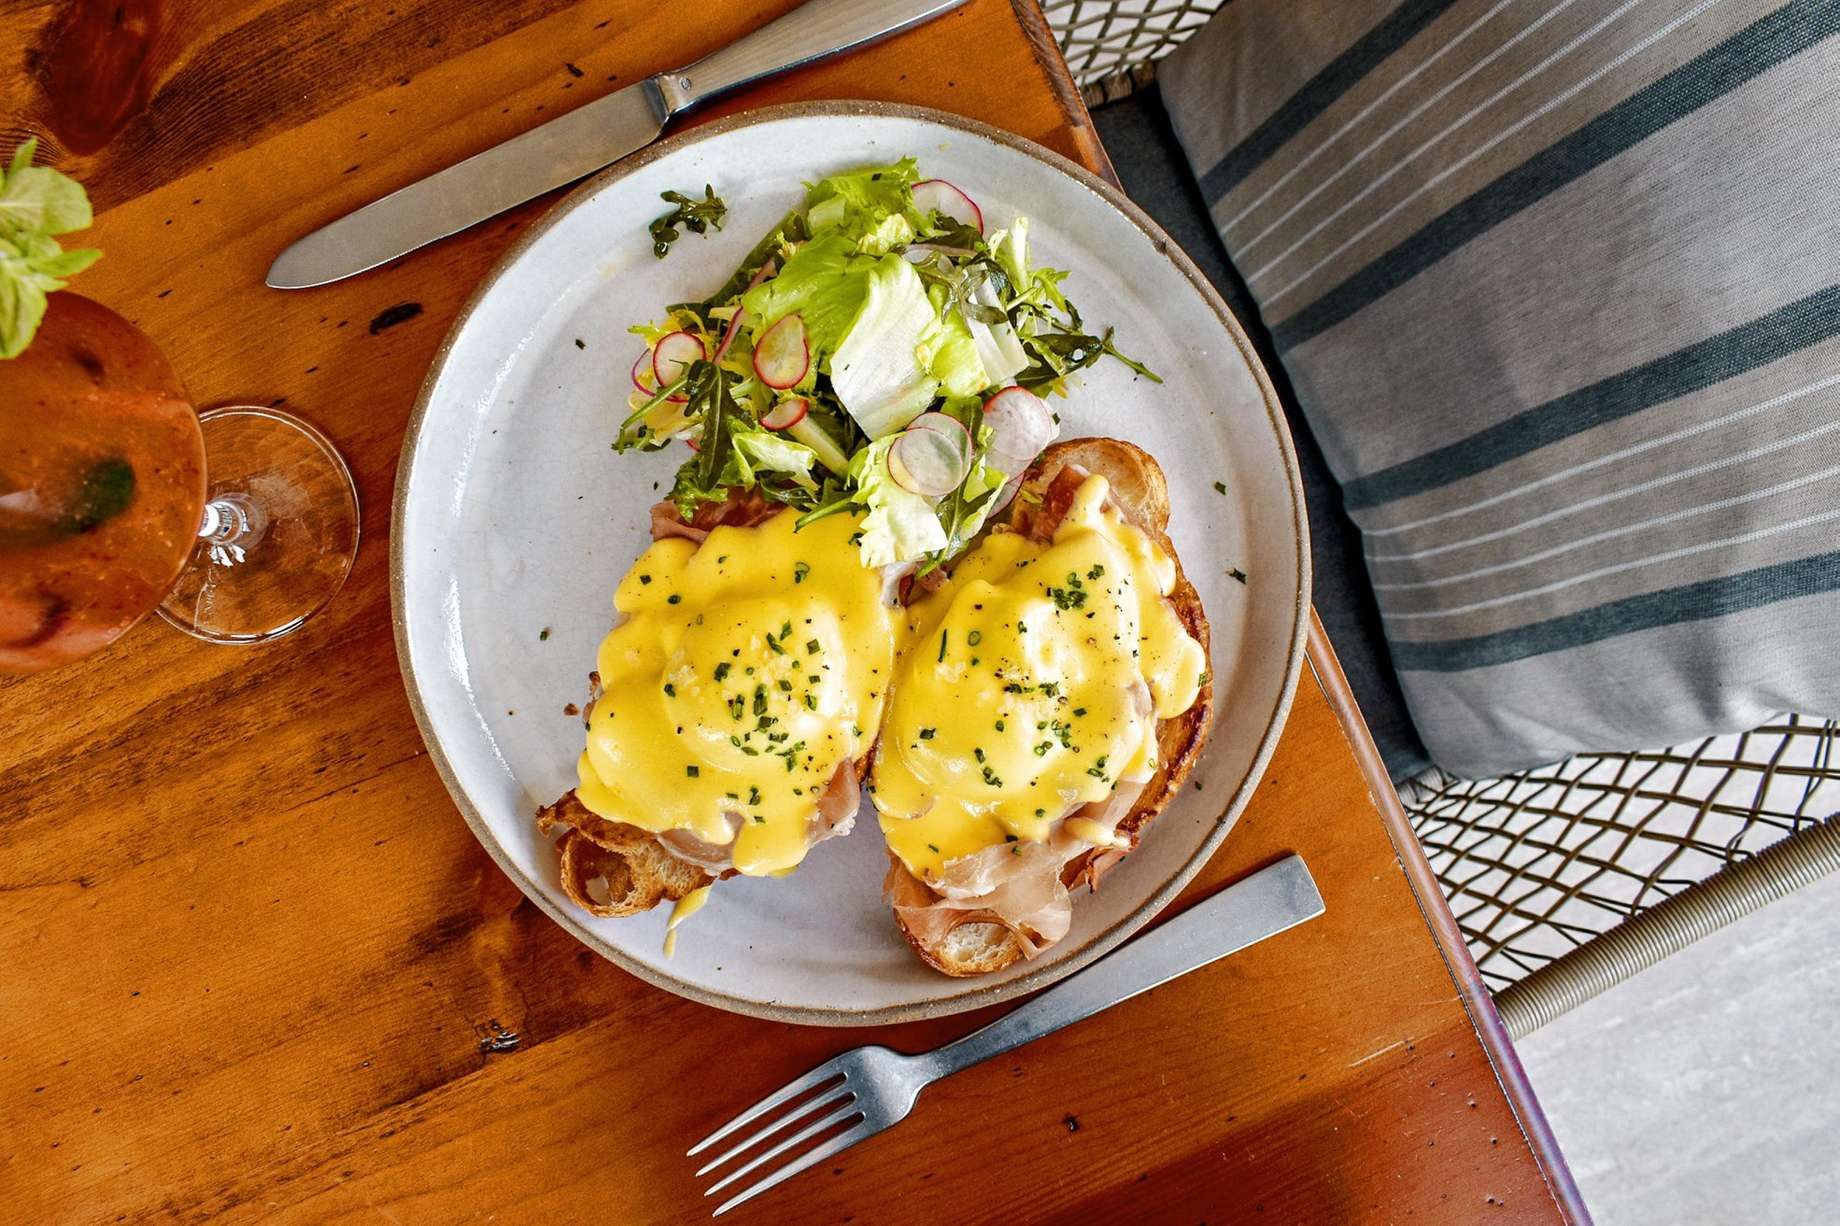 Miraculous Best Brunch In Los Angeles Good Brunch Spots In Every La Home Interior And Landscaping Oversignezvosmurscom